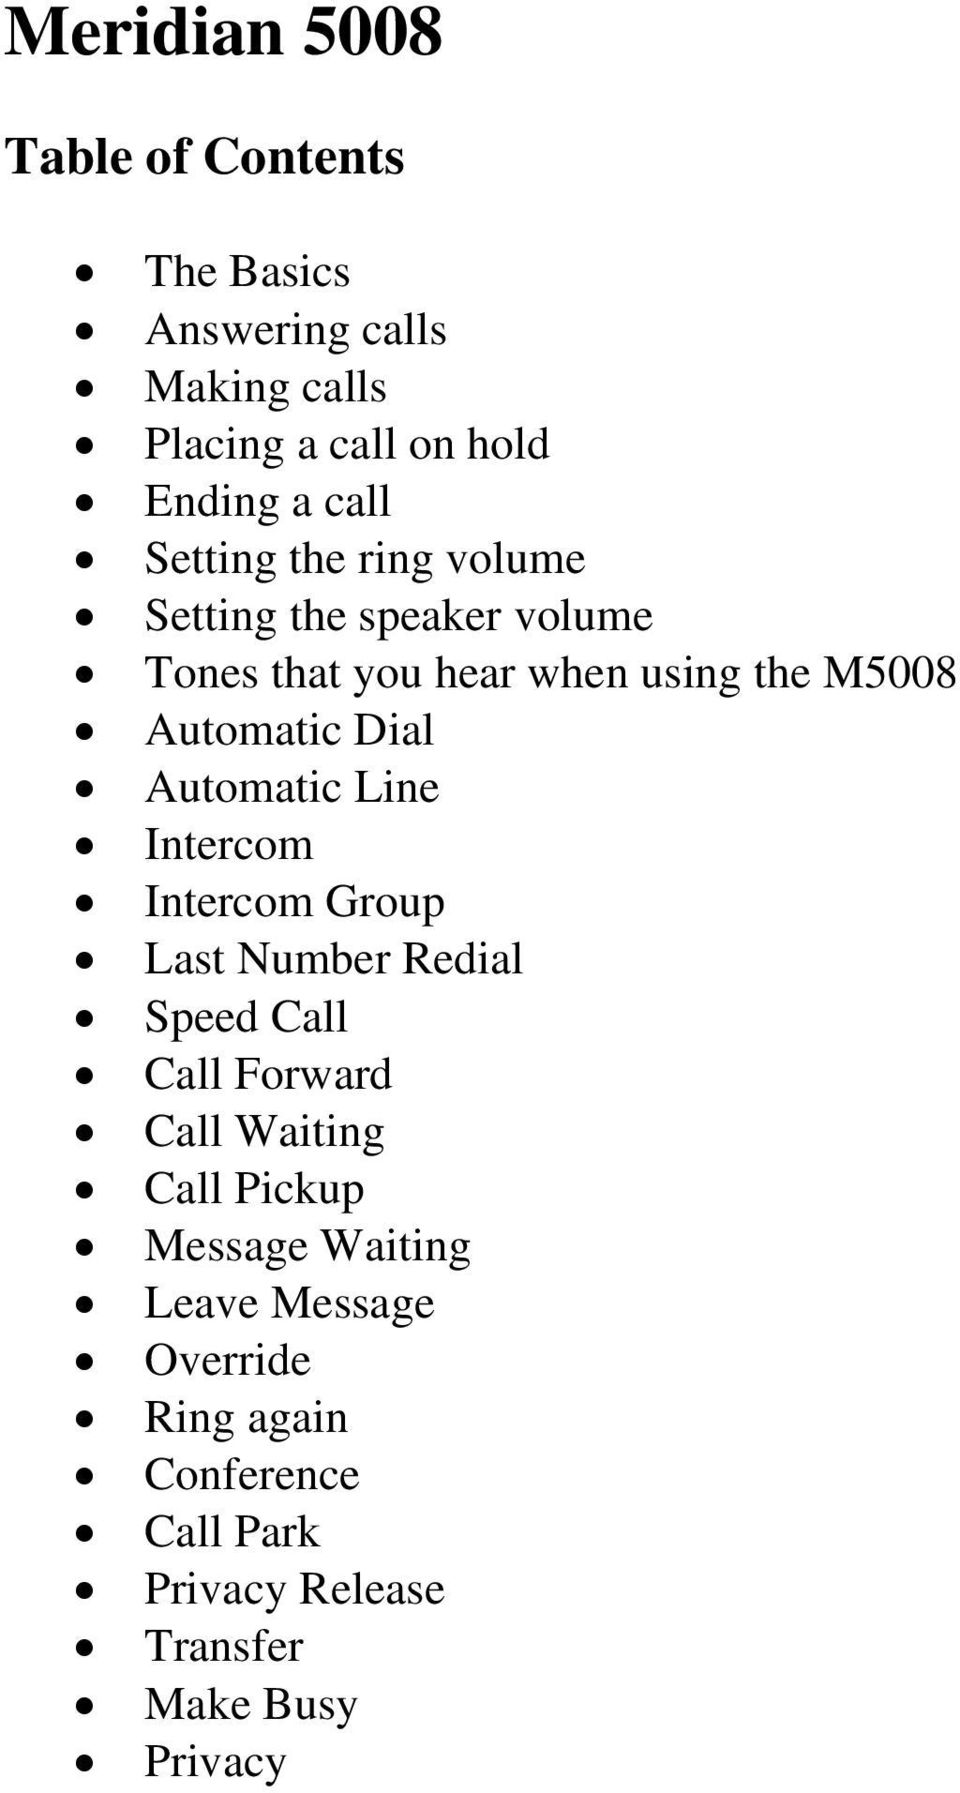 Automatic Line Intercom Intercom Group Last Number Redial Speed Call Call Forward Call Waiting Call Pickup